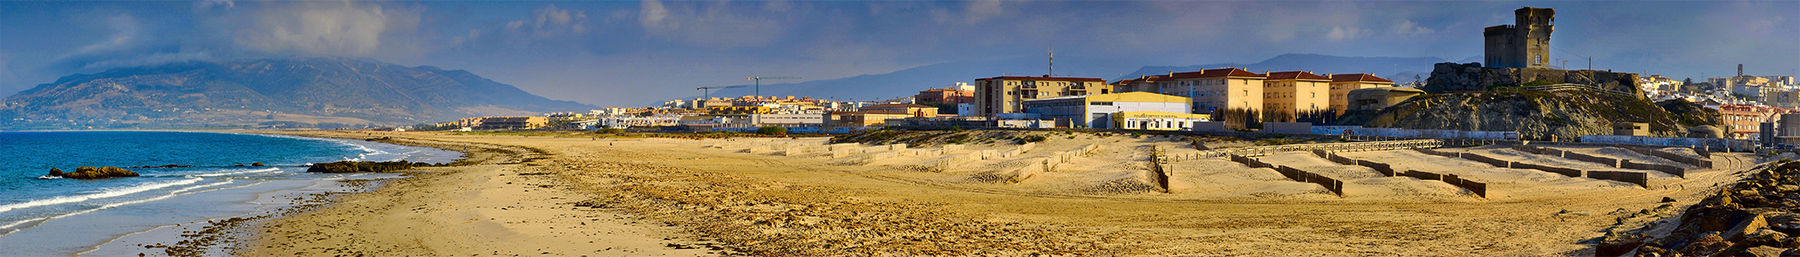 Tarifa panorama-view of the town banner.jpg